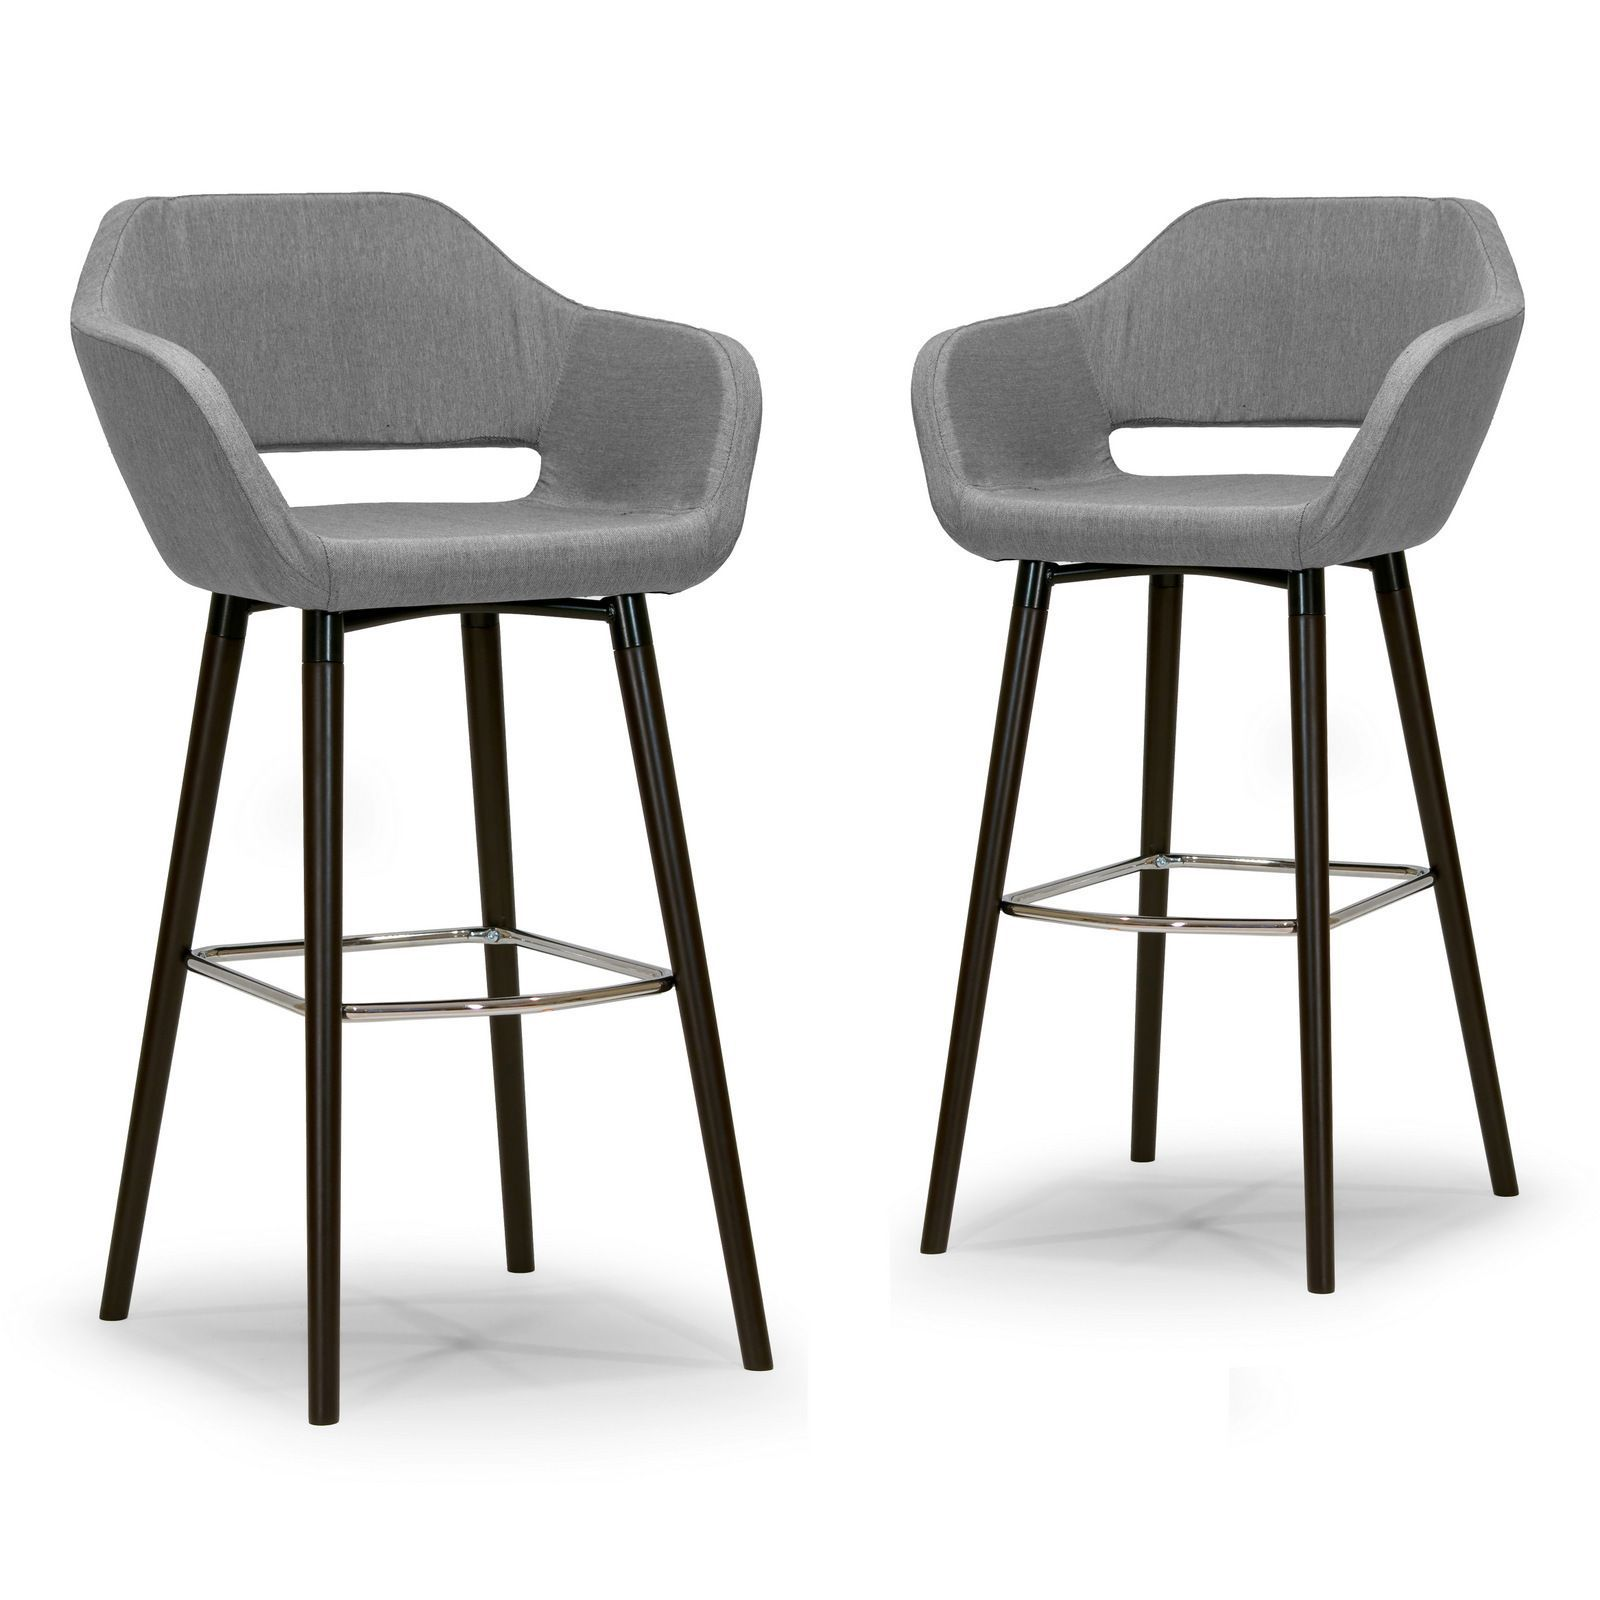 Glamour Adel Modern Grey Fabric Bar Stool With Beech Legs Set Of 2